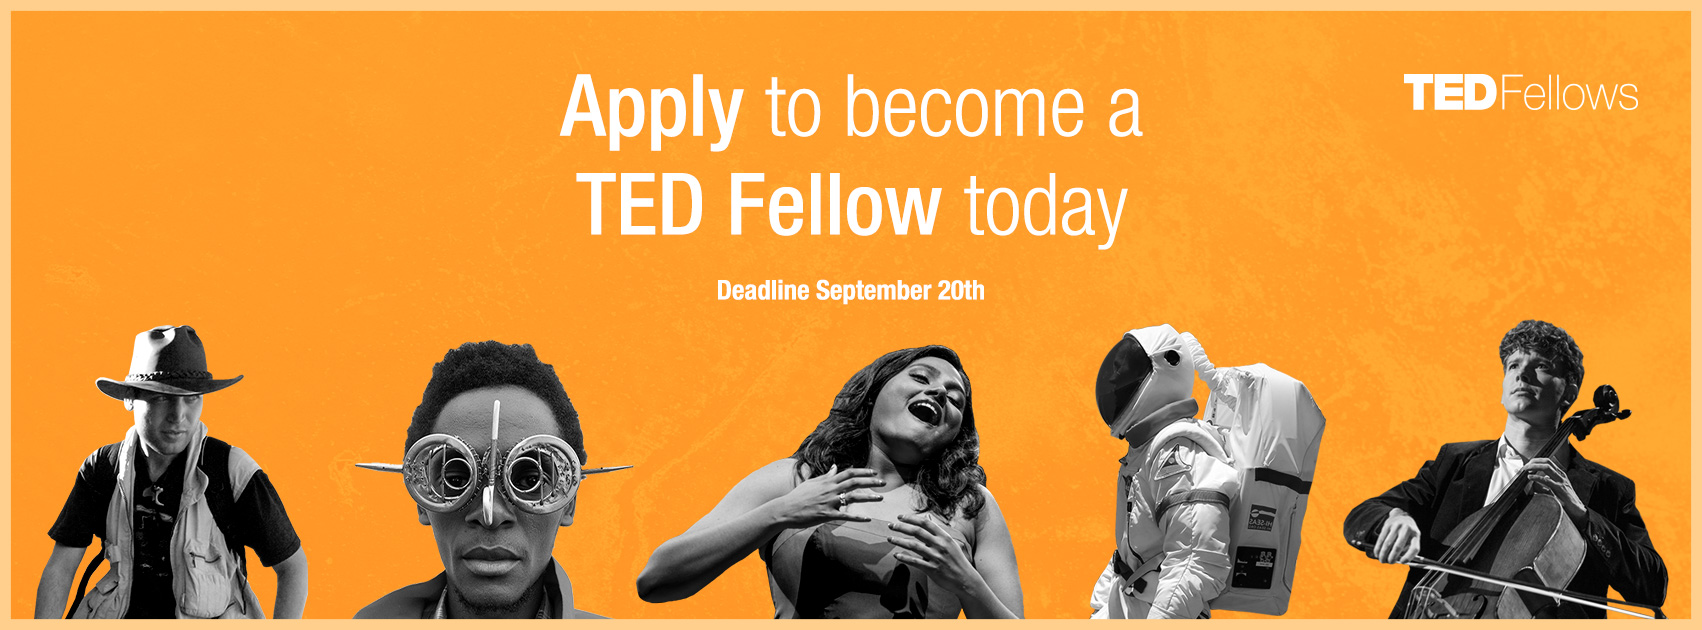 TED2016 Fellowship application